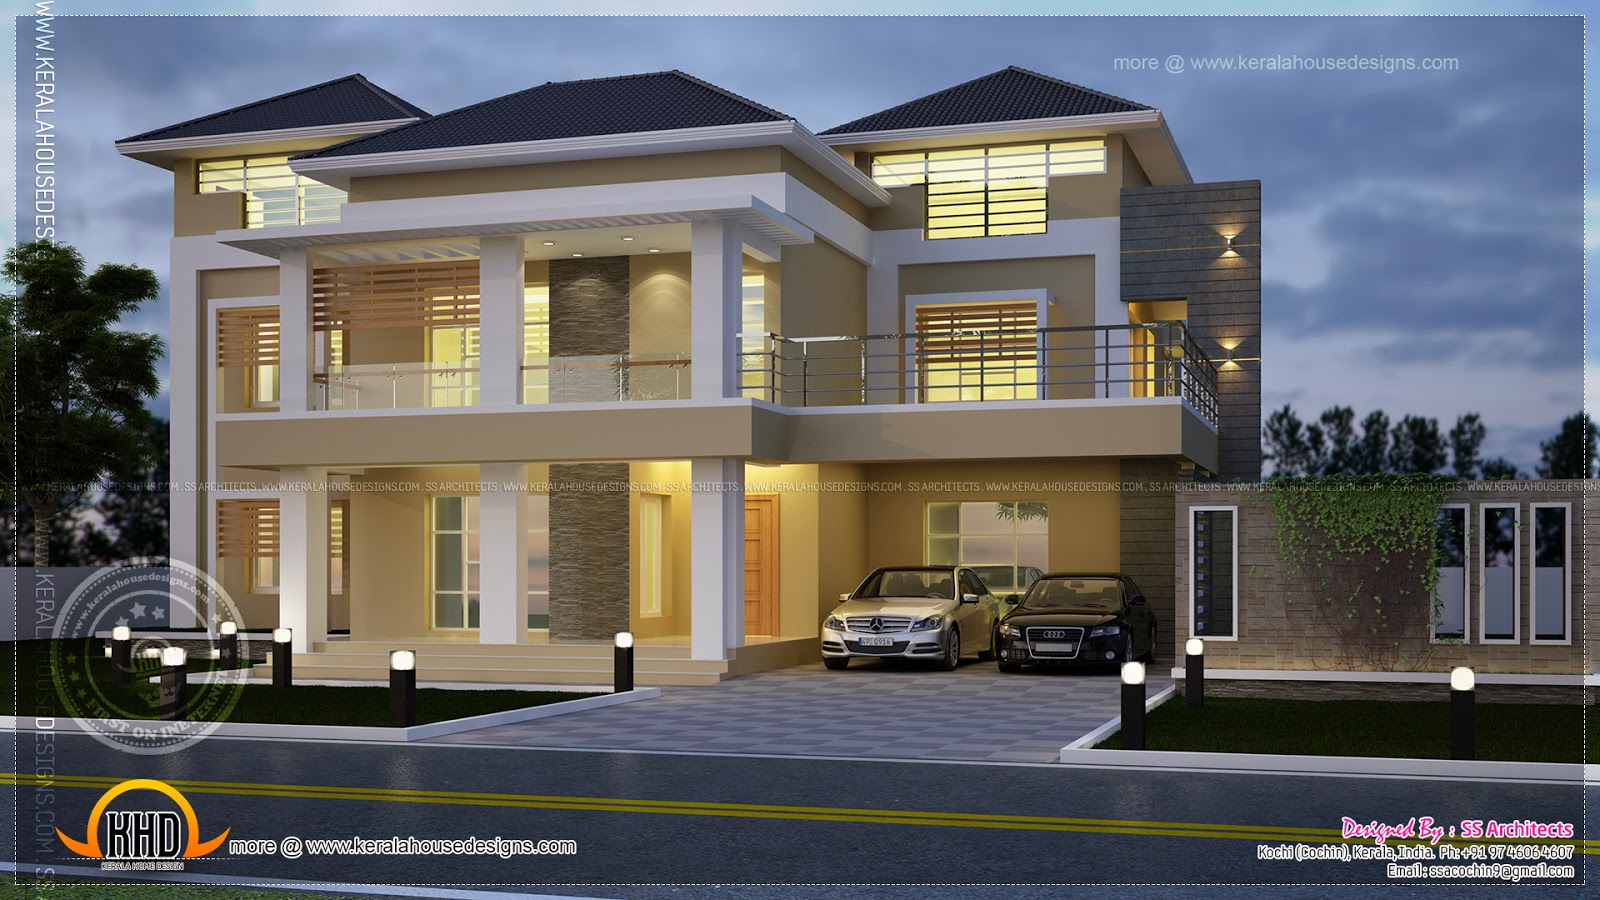 Modern villa night view elevation indian house plans for House garden design india